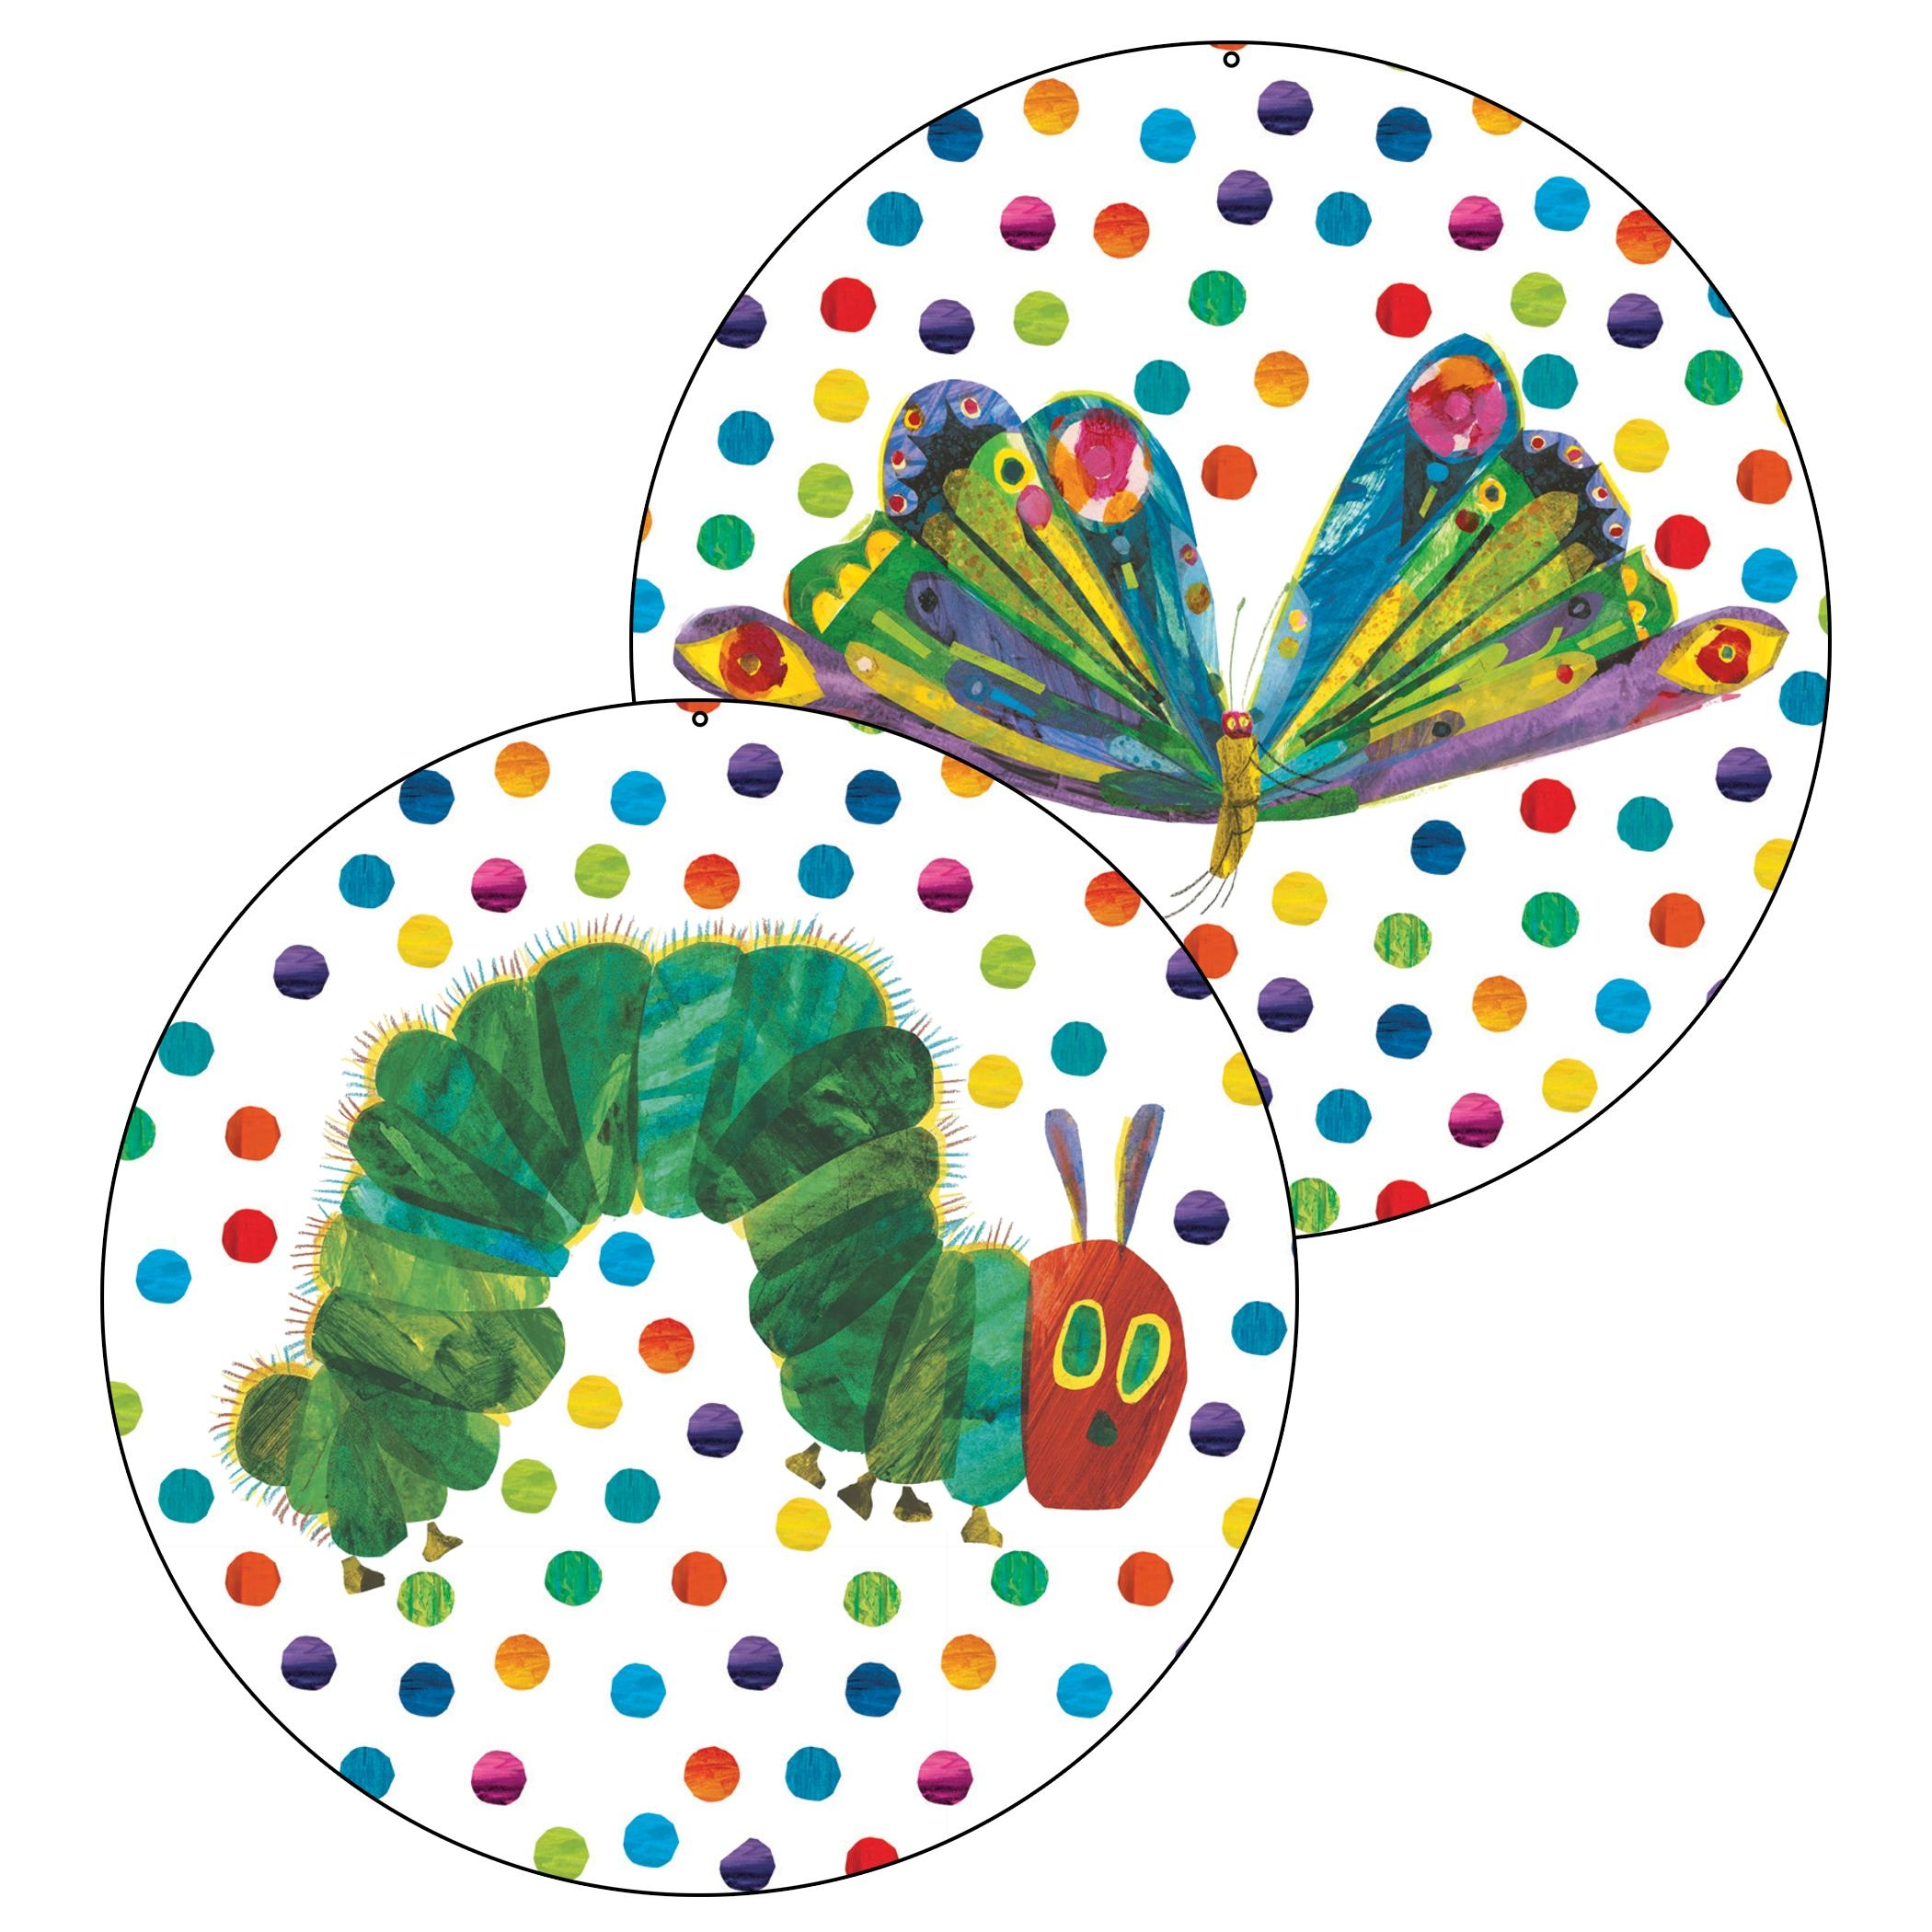 Classroom Decorations   The Eric Carle Museum Of Picture Book Art Pertaining To The Very Hungry Caterpillar Wall Art (Image 5 of 20)